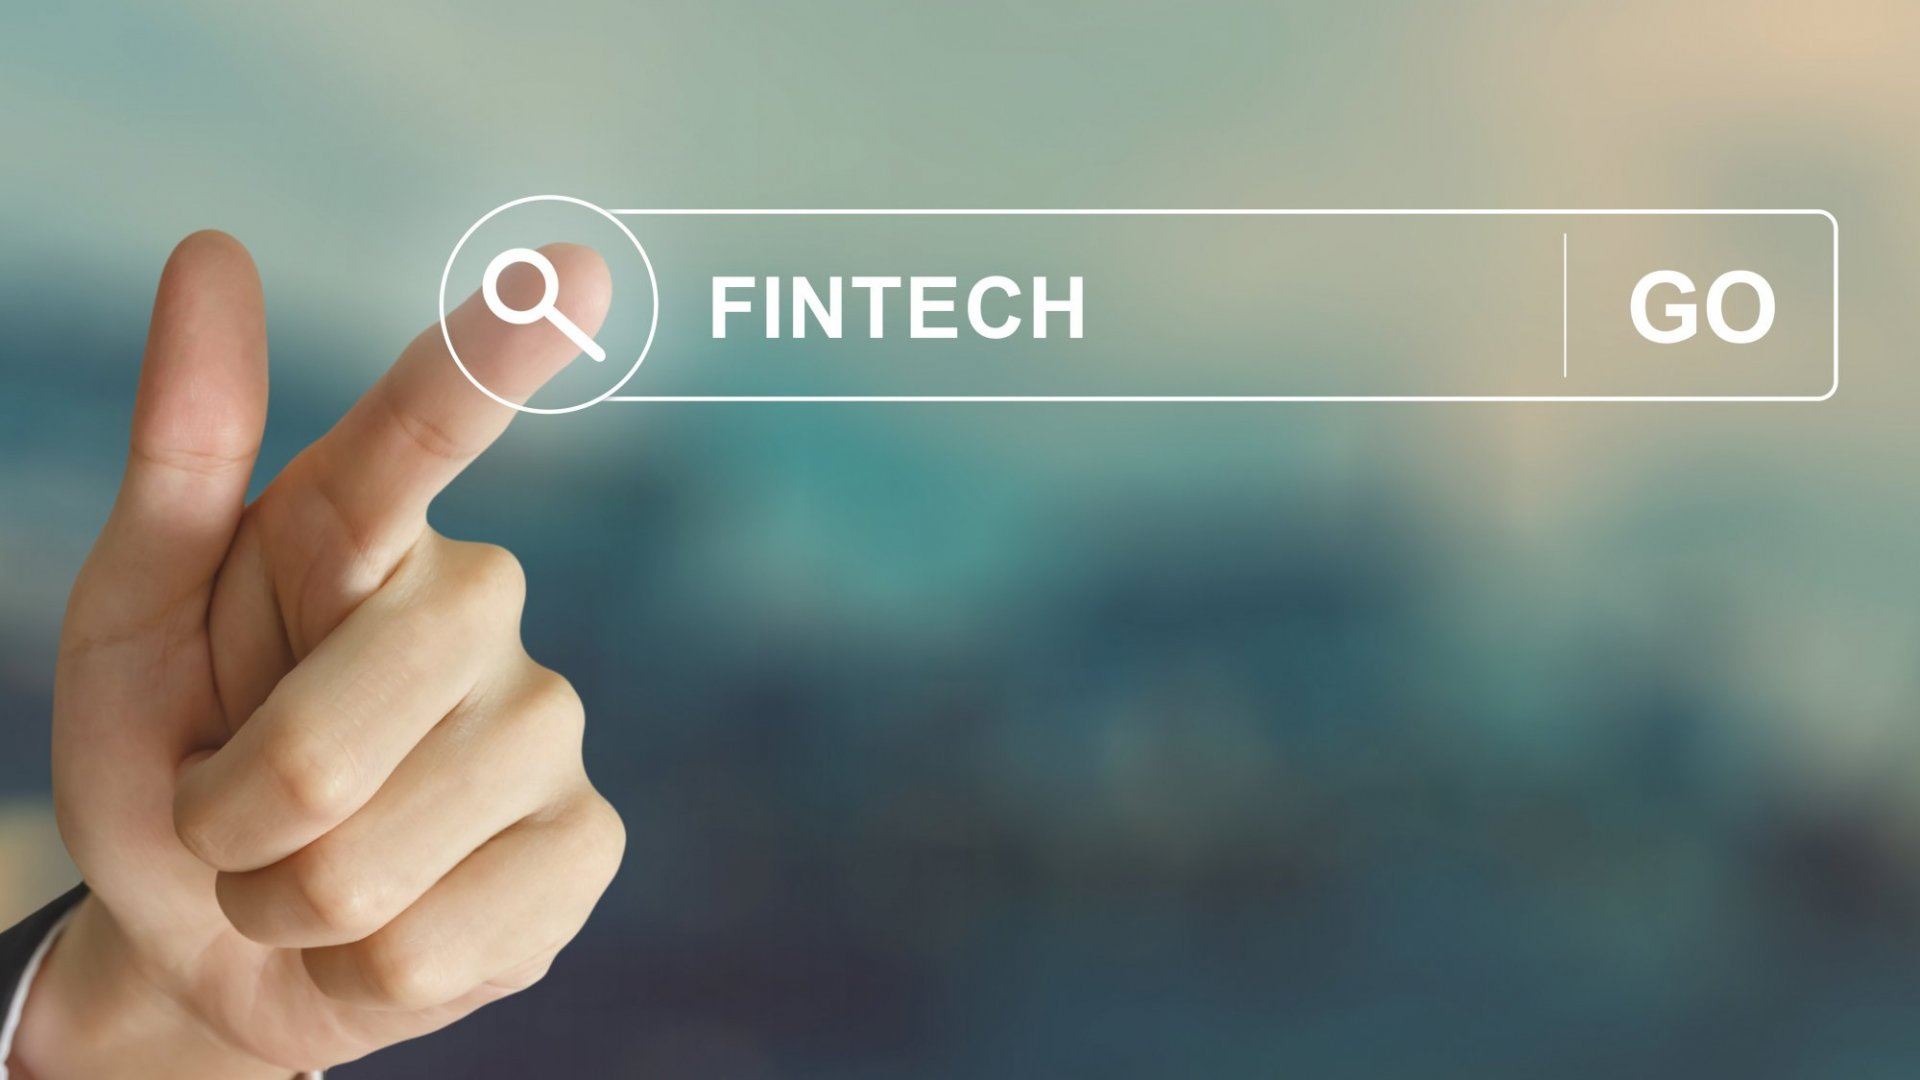 Why There Could Be Greater Inclusion for FinTech with Help from the Blockchain